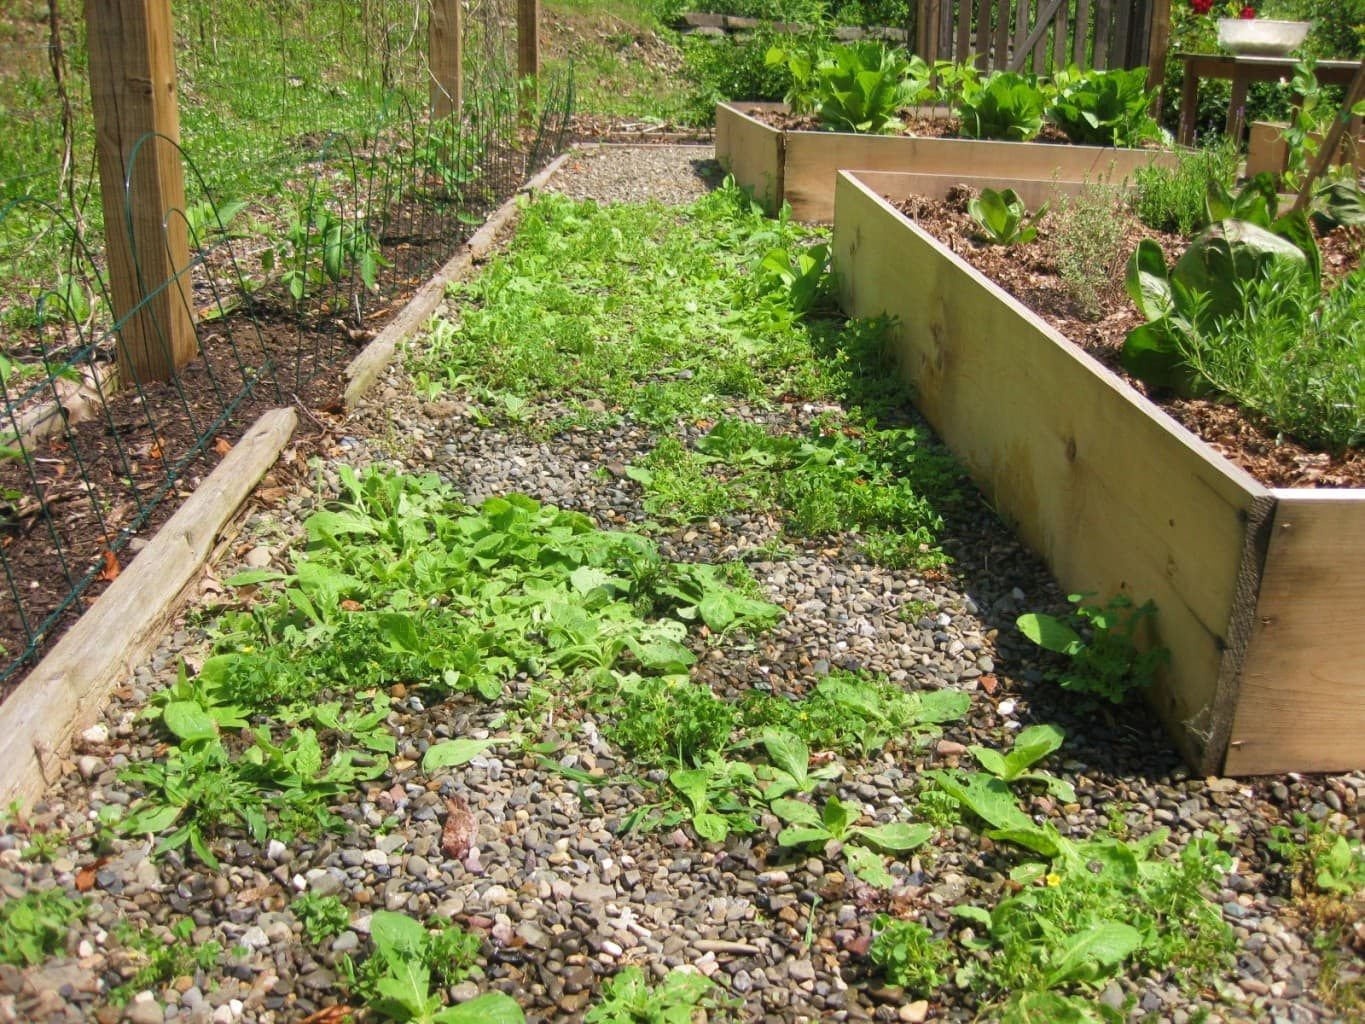 Winterize Your Garden To Prepare It For Spring